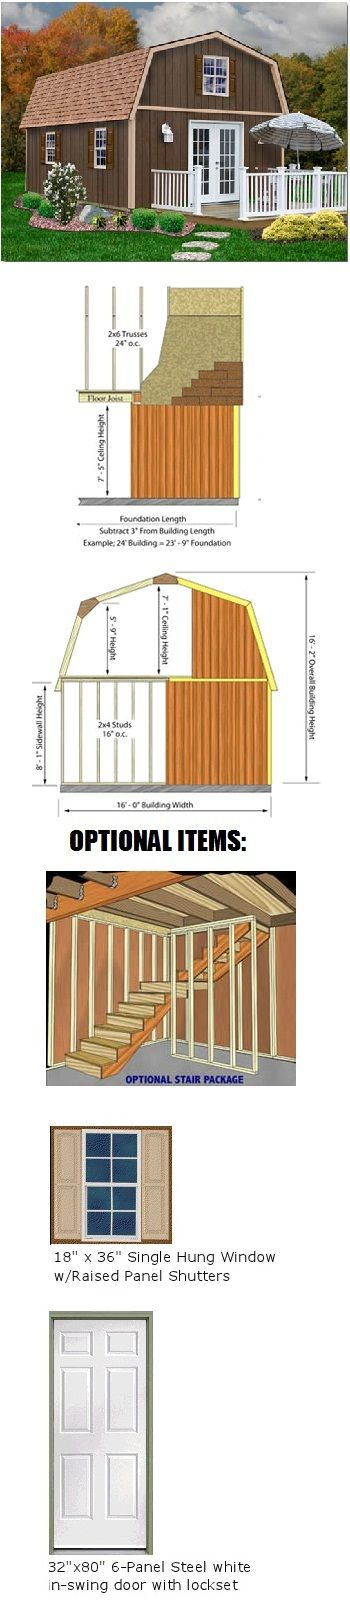 10 images about from a shed to a home on pinterest for 16x32 2 story house plans